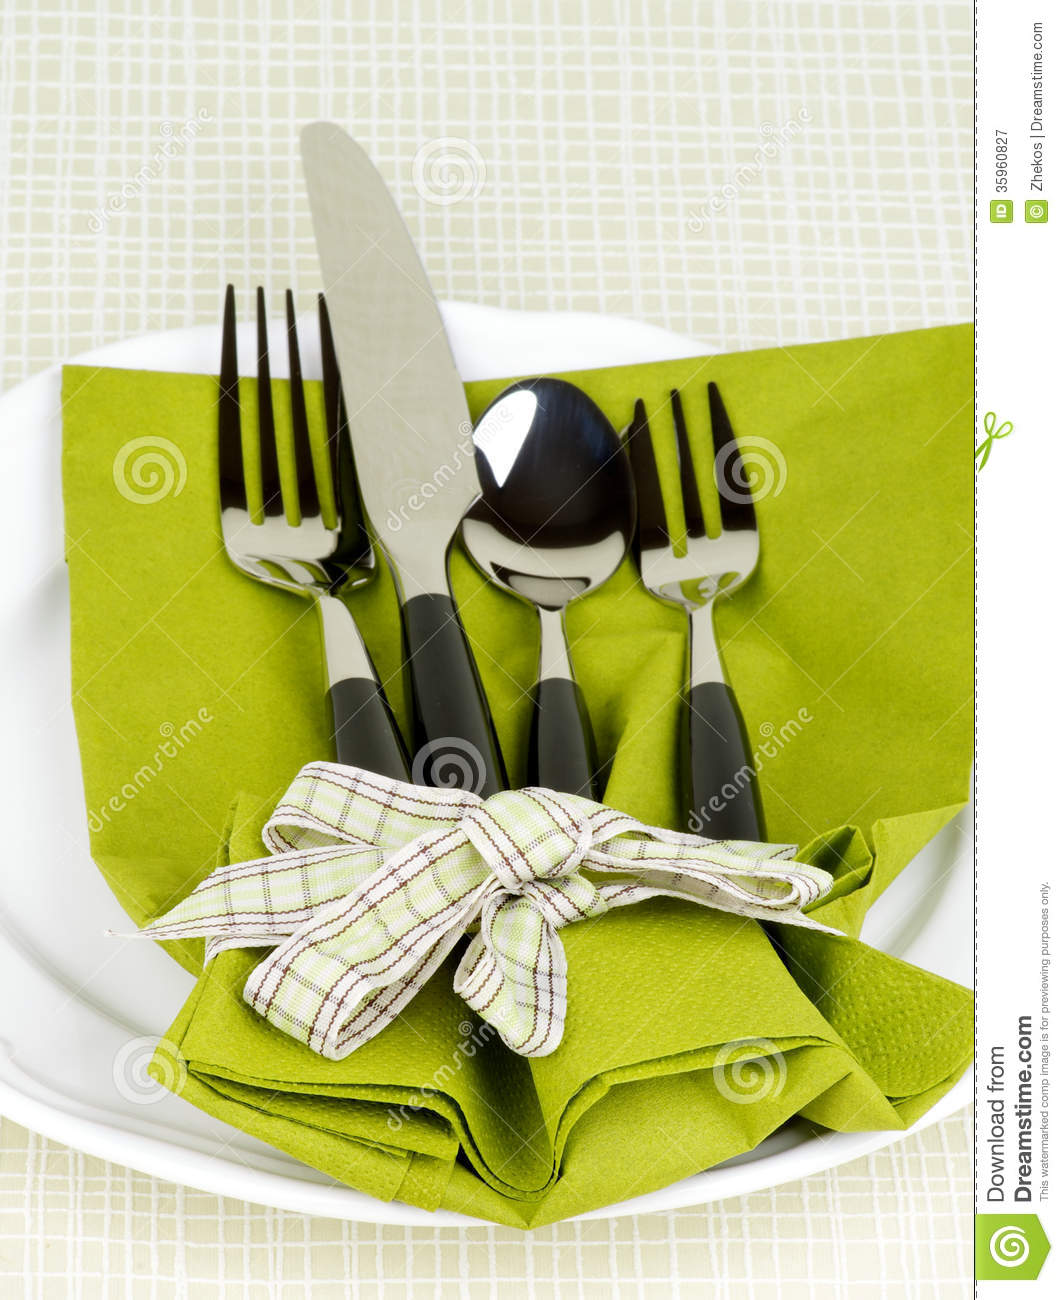 Elegant Table Setting With Fork Knife Spoon And Dessert Fork